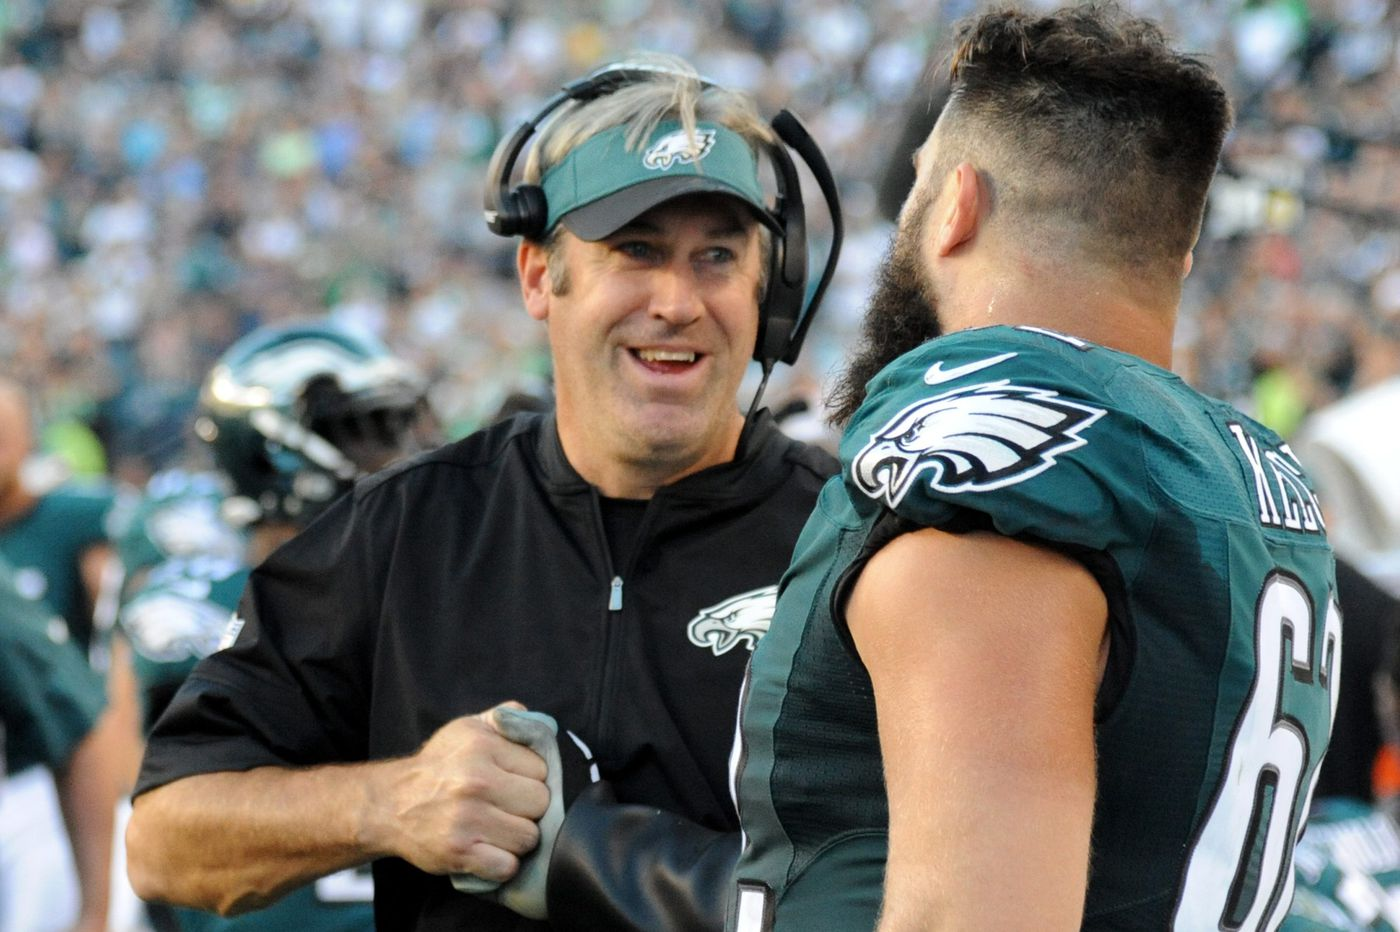 'Gross errors' in practice help explain Eagles' slow start | Marcus Hayes